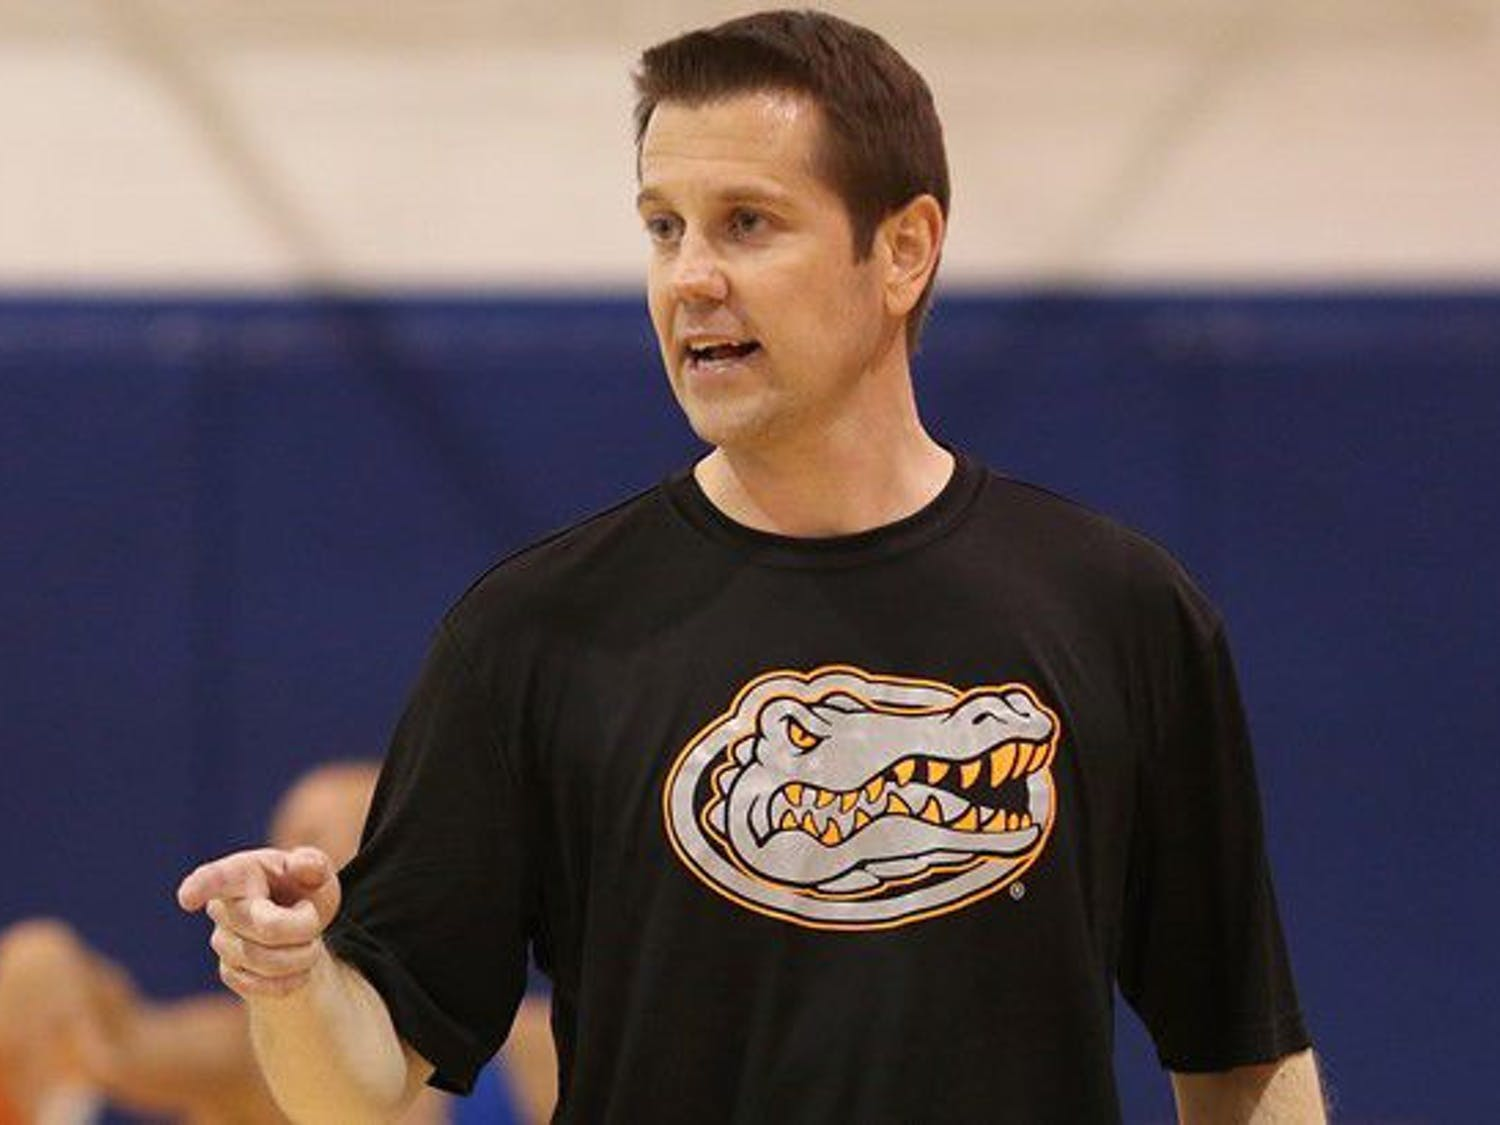 New women's basketball coach Cam Newbauer spoke to the media on Tuesday for the second time since he was hired nearly six months ago.